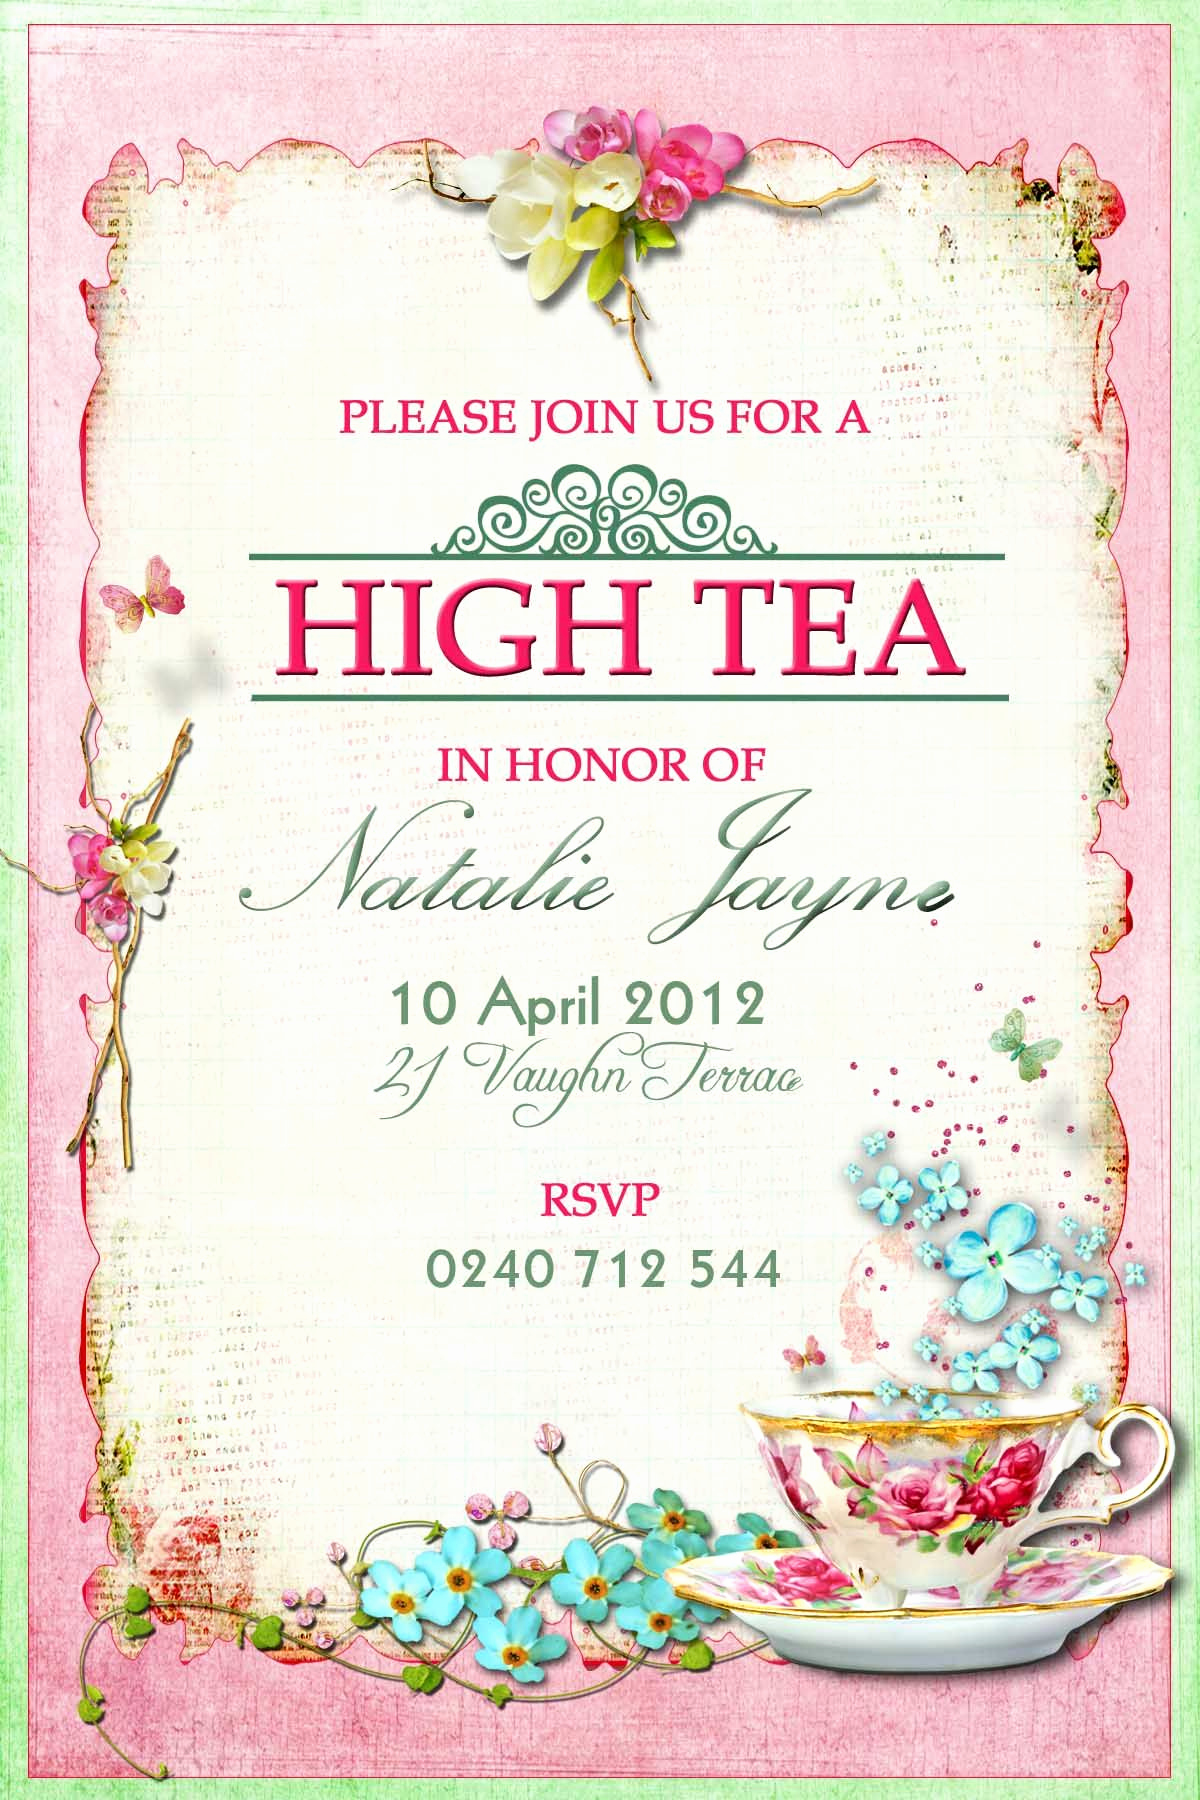 Tea Party Invitation Ideas Lovely Victorian High Tea Party Invitations Surprise Party